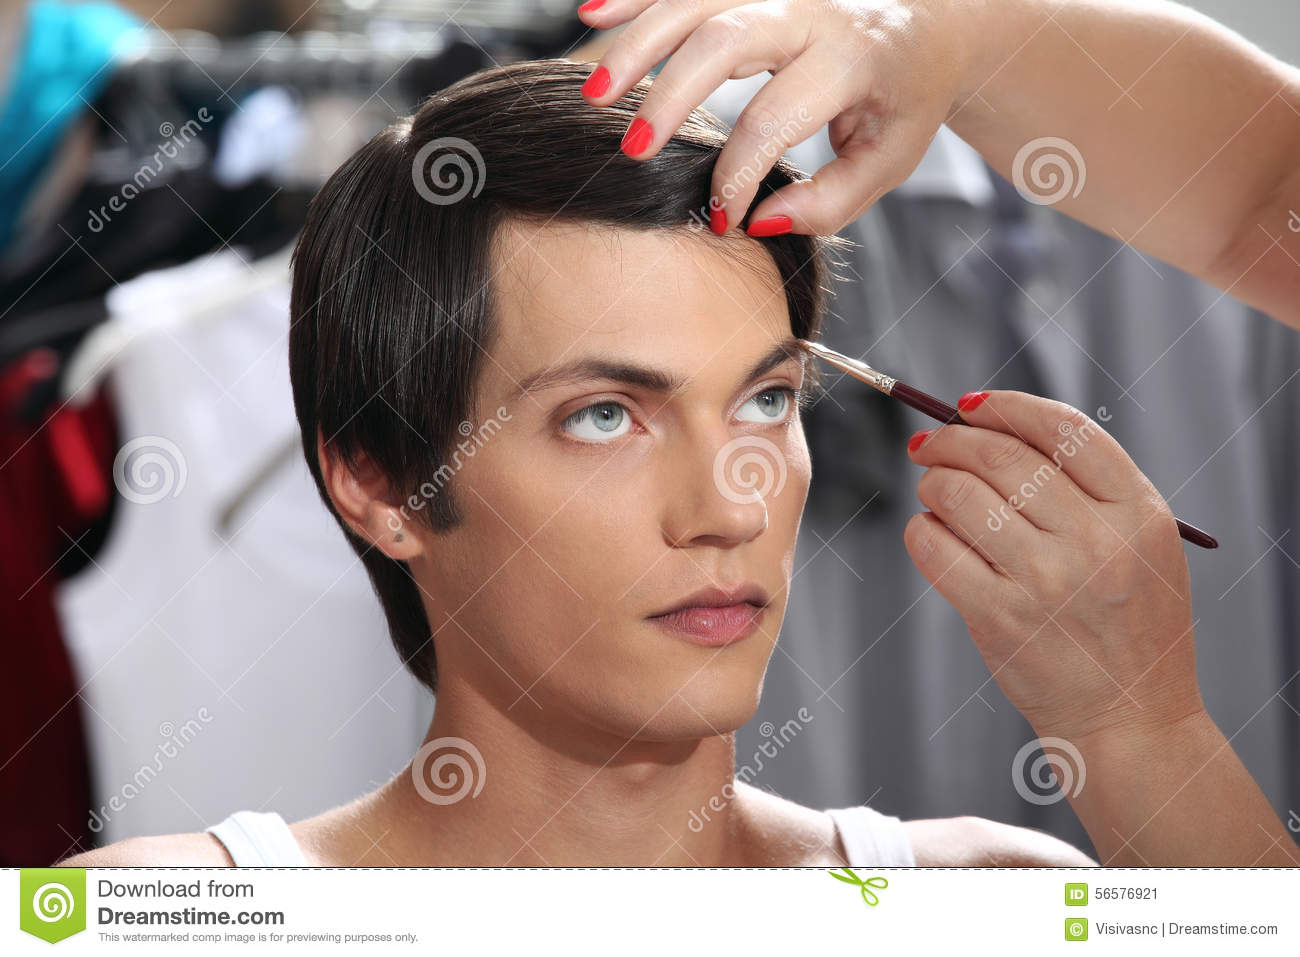 Eyebrows With Makeup Brush Model At Mirror In Dressing Room Stock